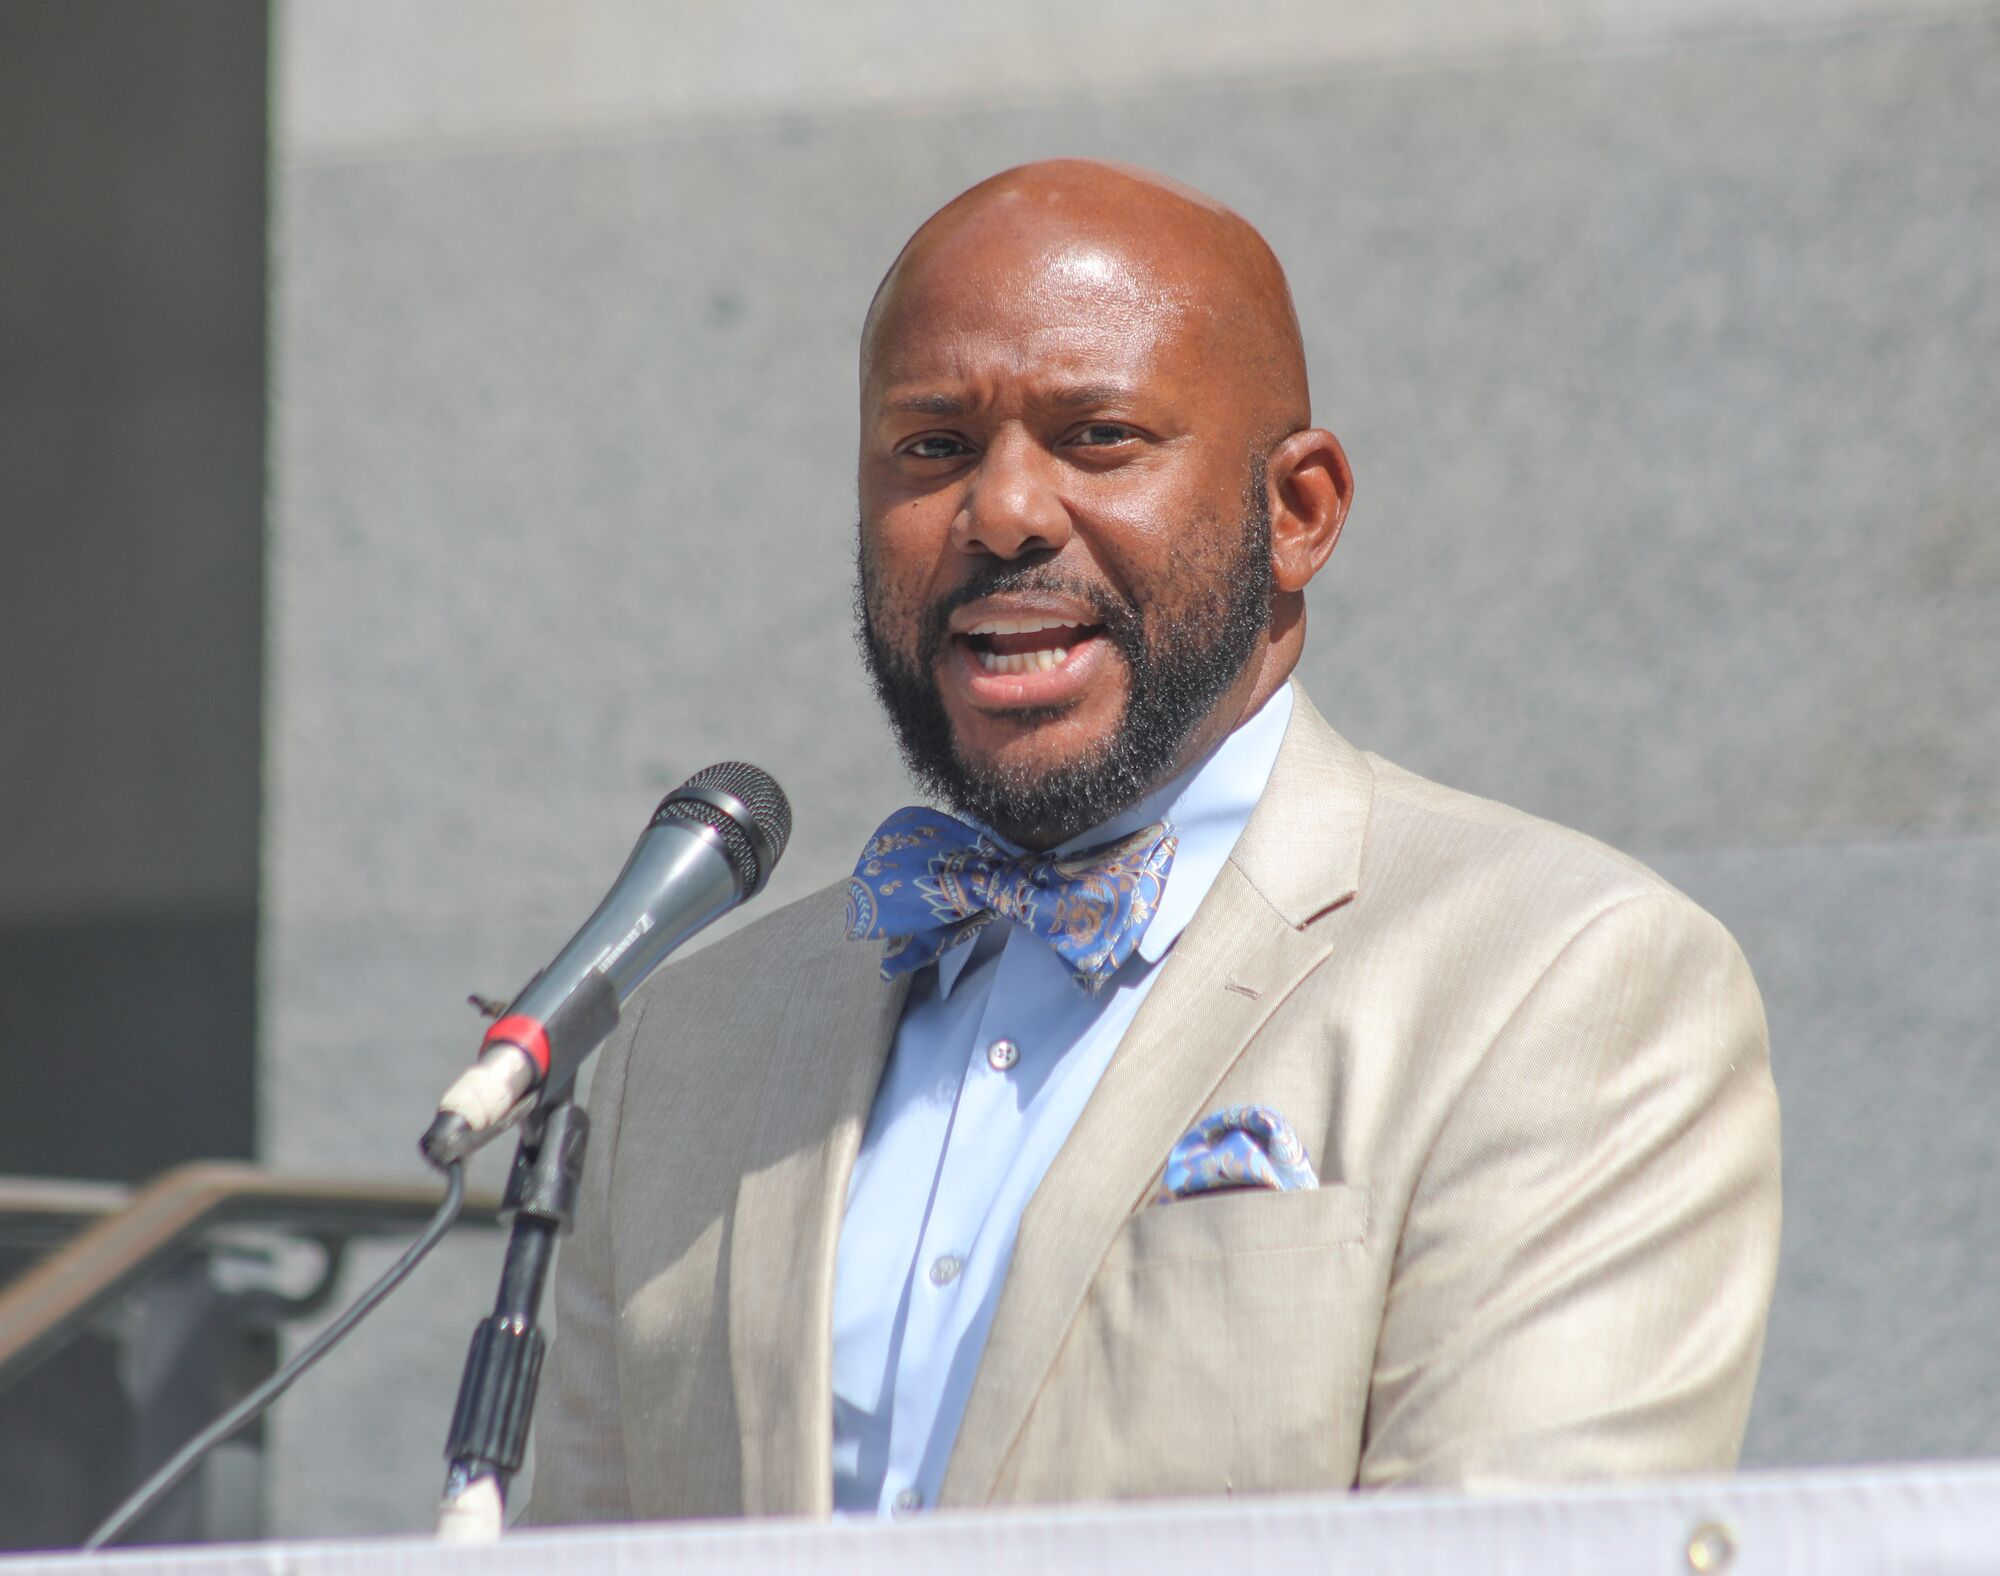 Assemblymember Mike Gipson